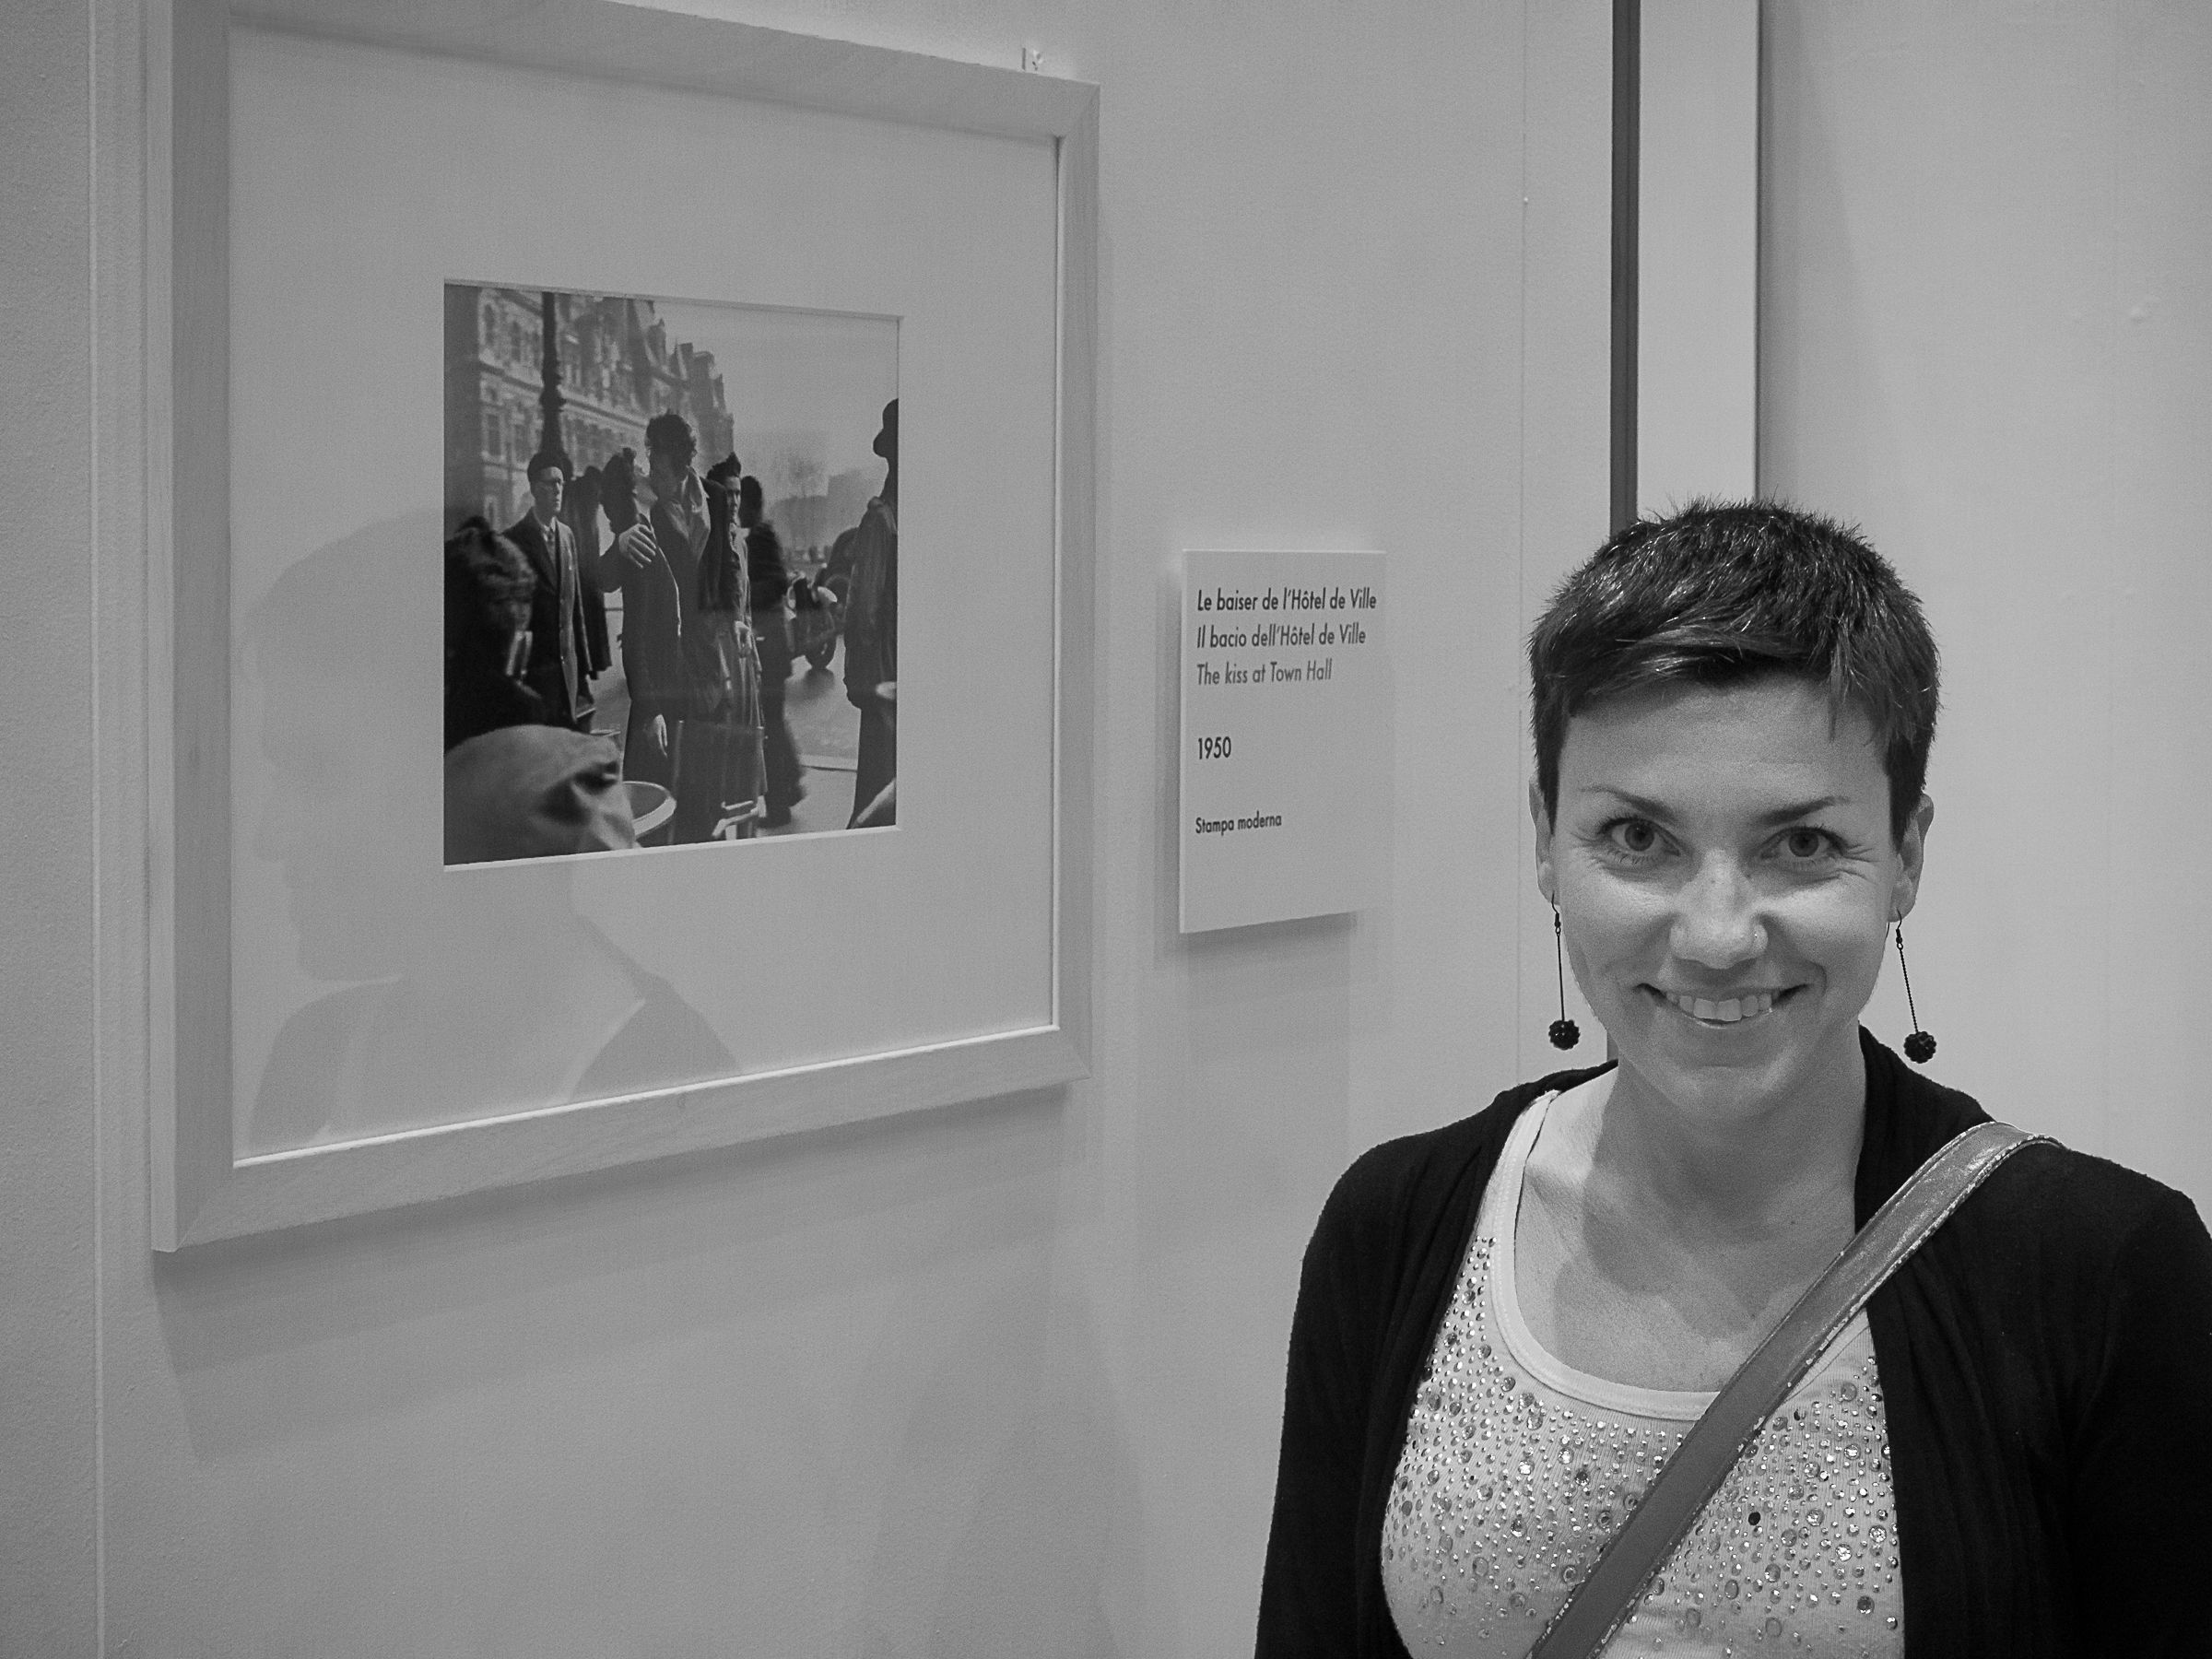 Meeting at the exhibition Doisneau Monza 09/06/16...